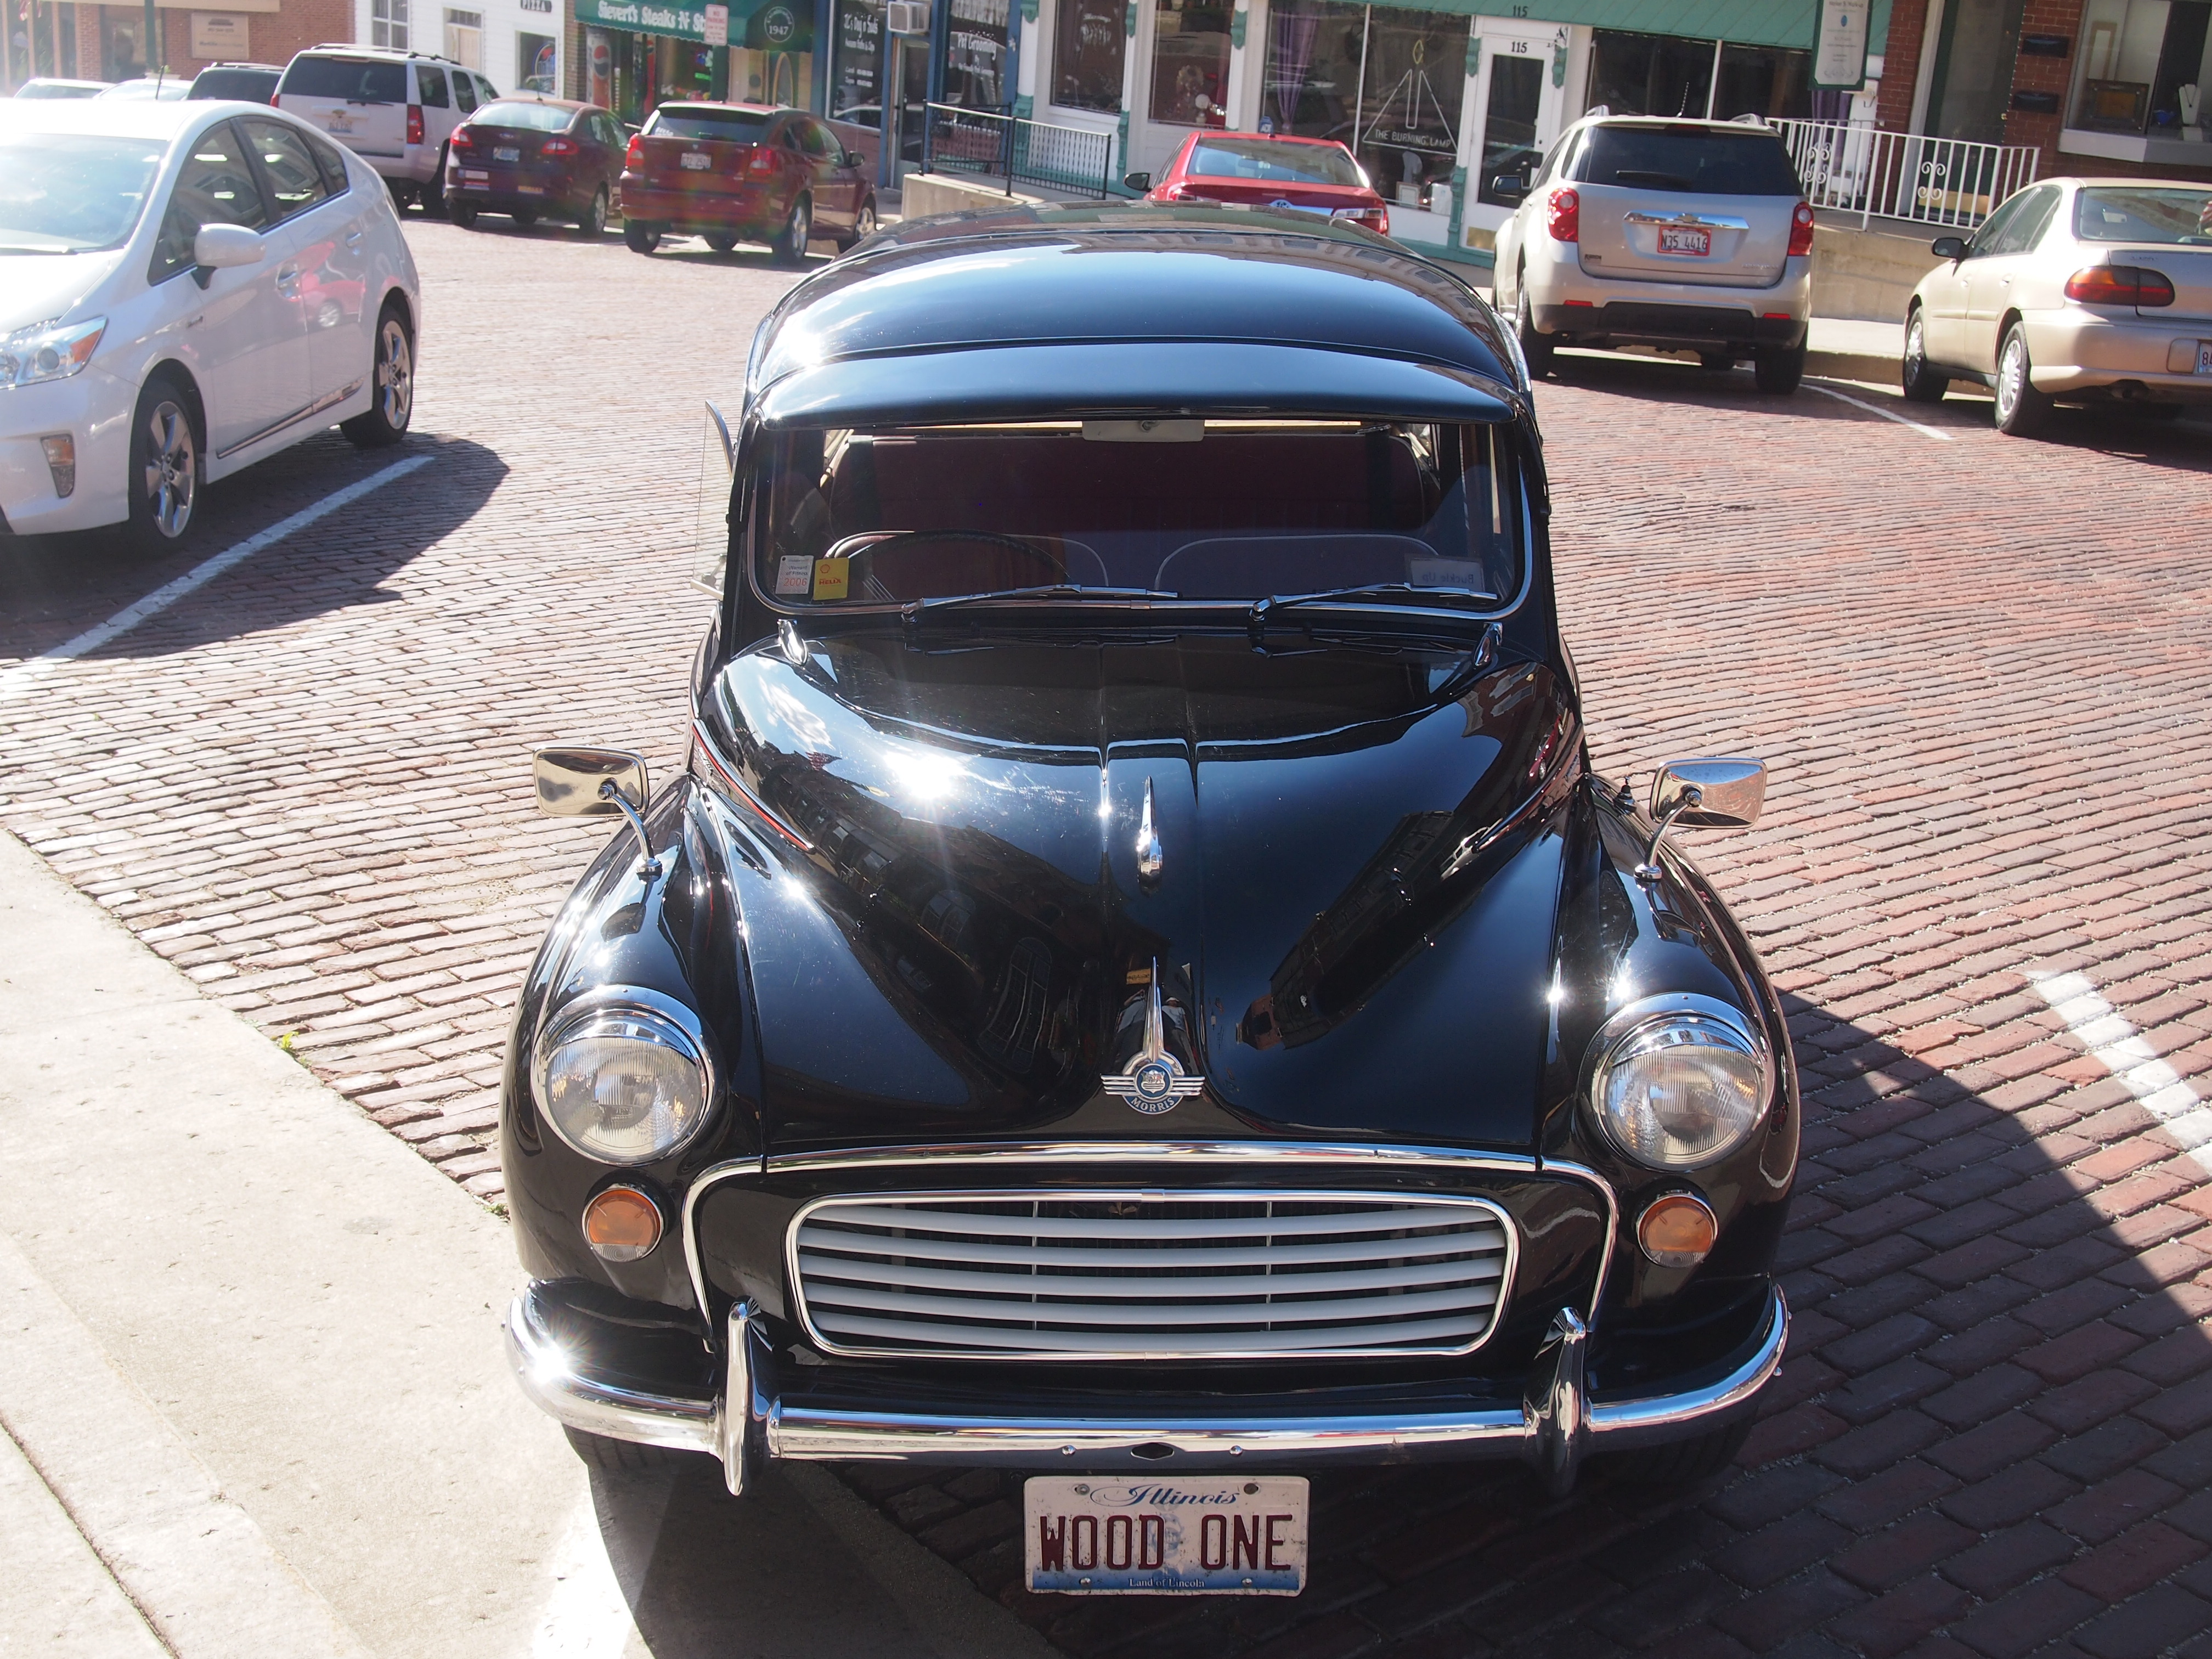 Morris Minor 1000 Traveller, Mount Carroll, Illinois, June 2014